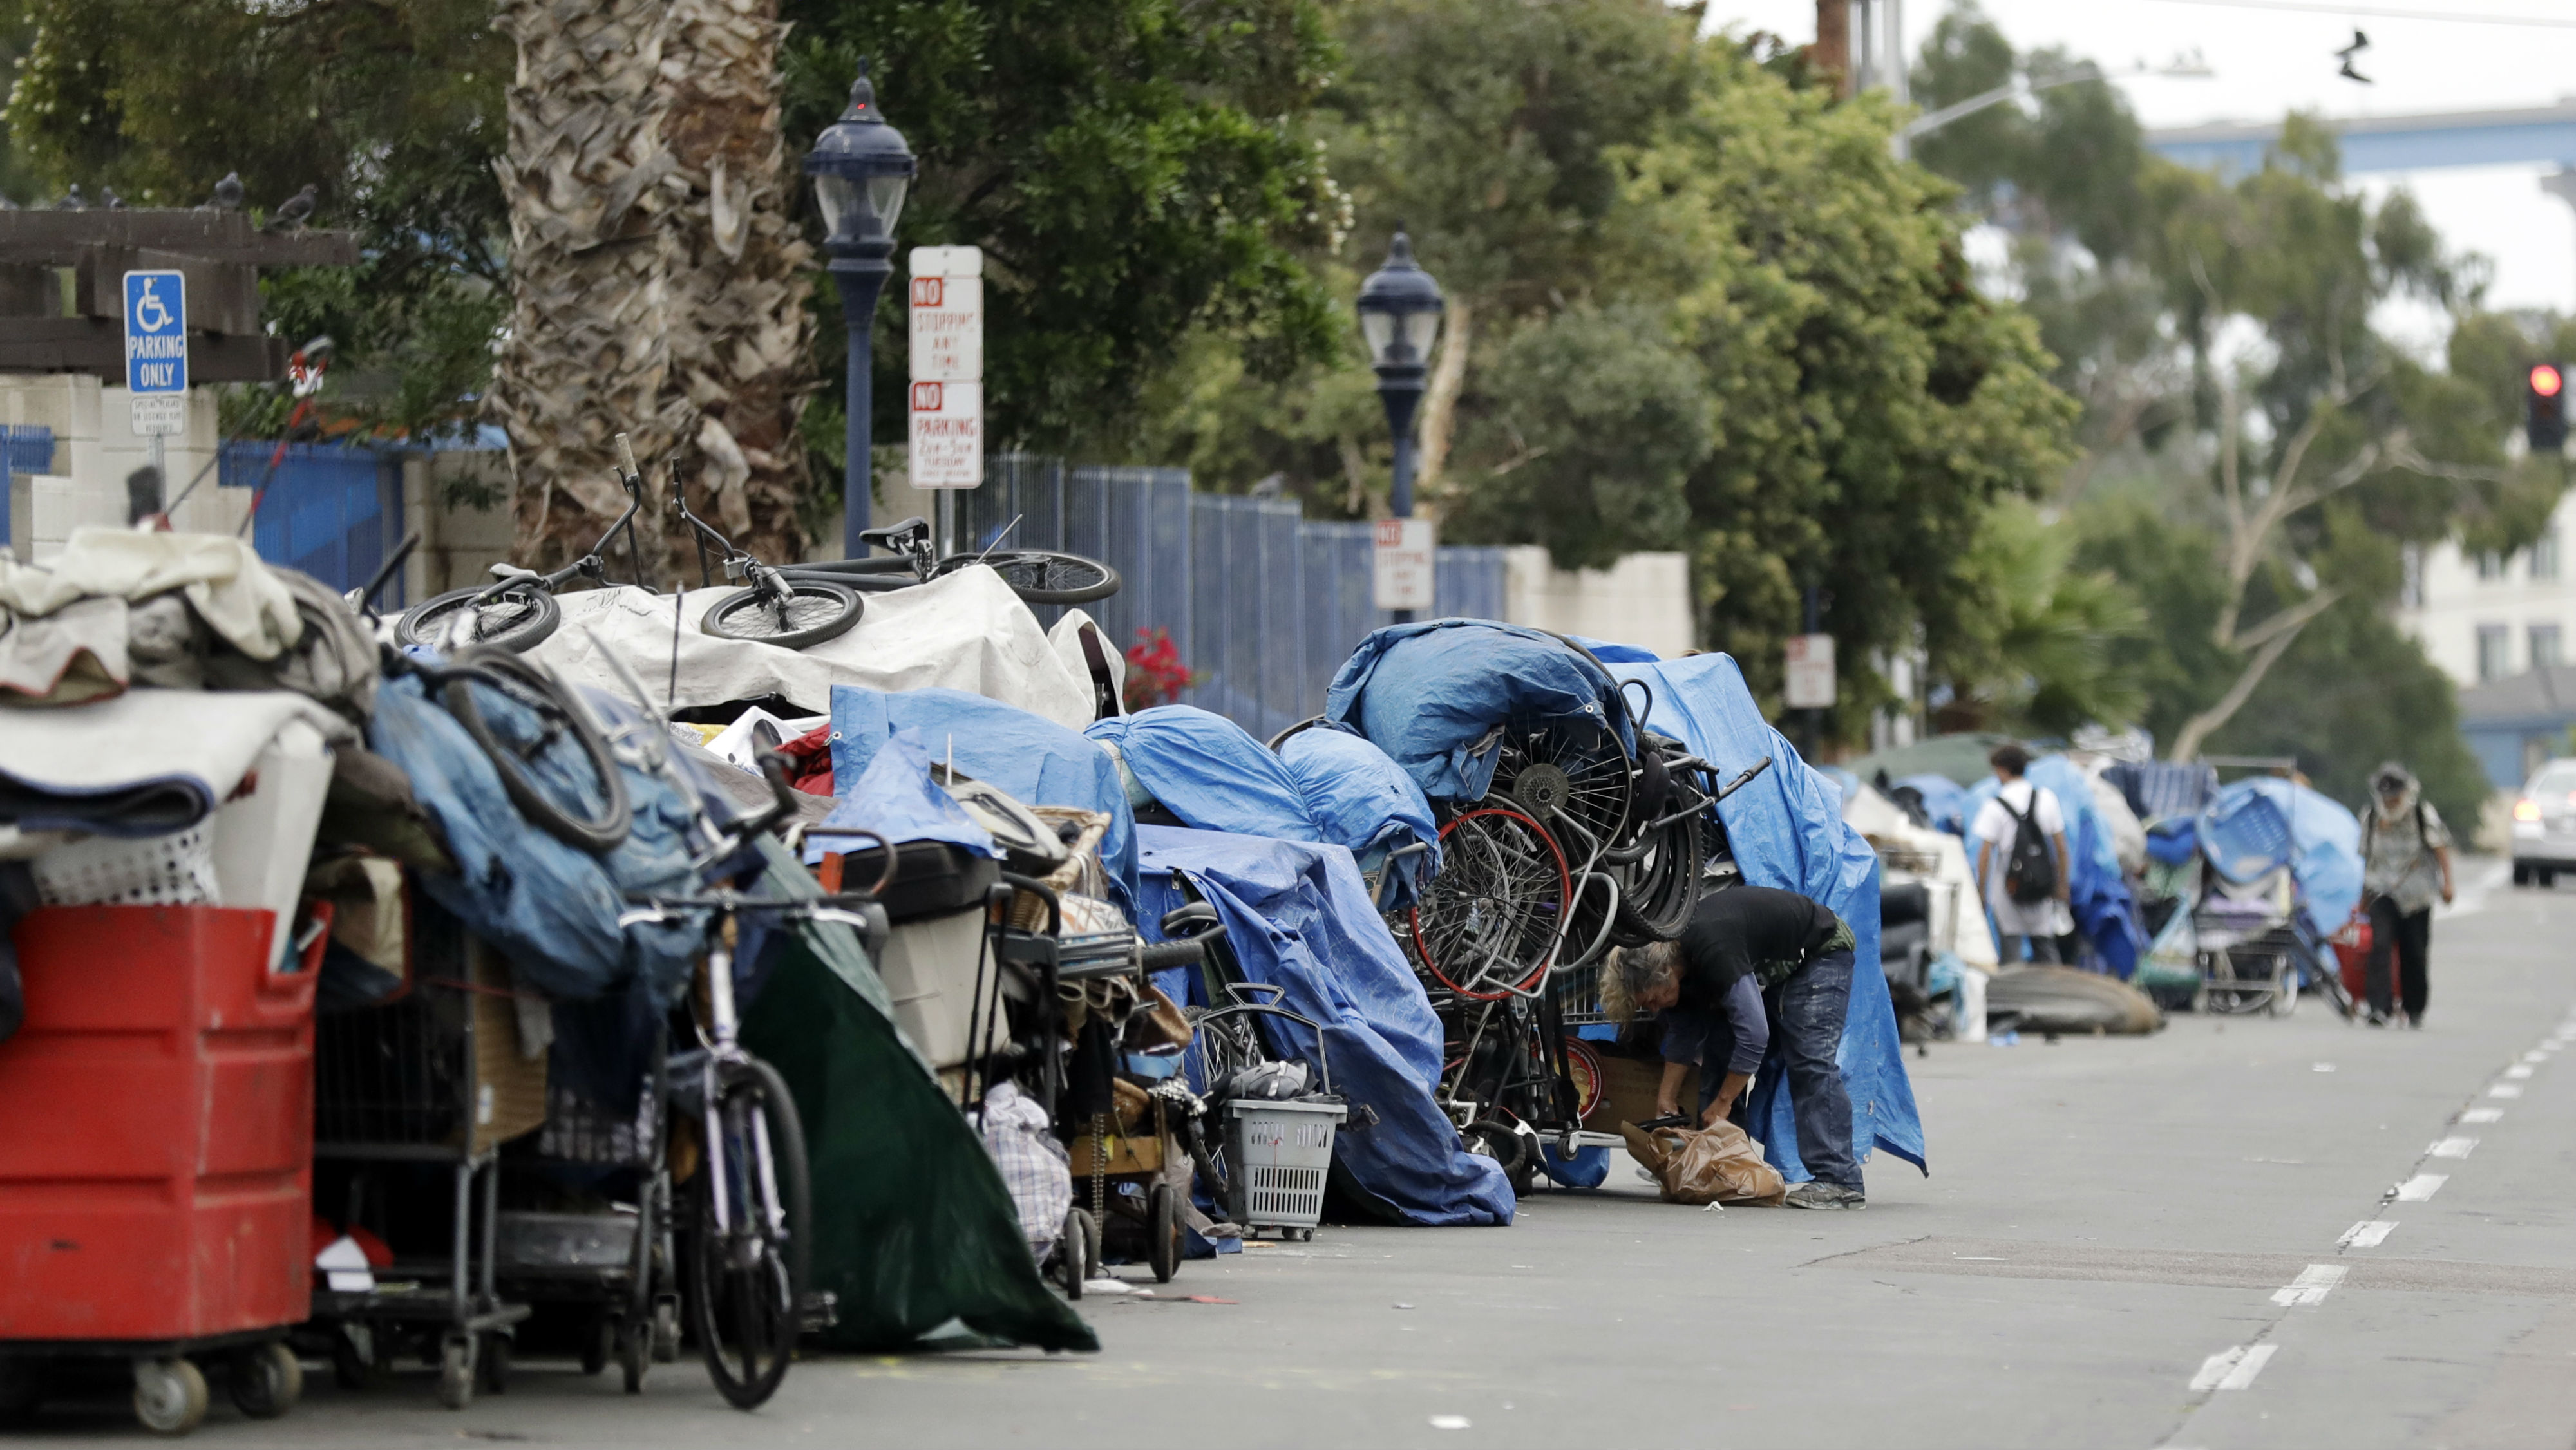 In this Sept. 19, 2017 photo, homeless people stand among their items along 17th Street in San Diego. The city has cleared a downtown street where hundreds of homeless people regularly camp during ongoing efforts to sanitize neighborhoods to control the spread of hepatitis A.